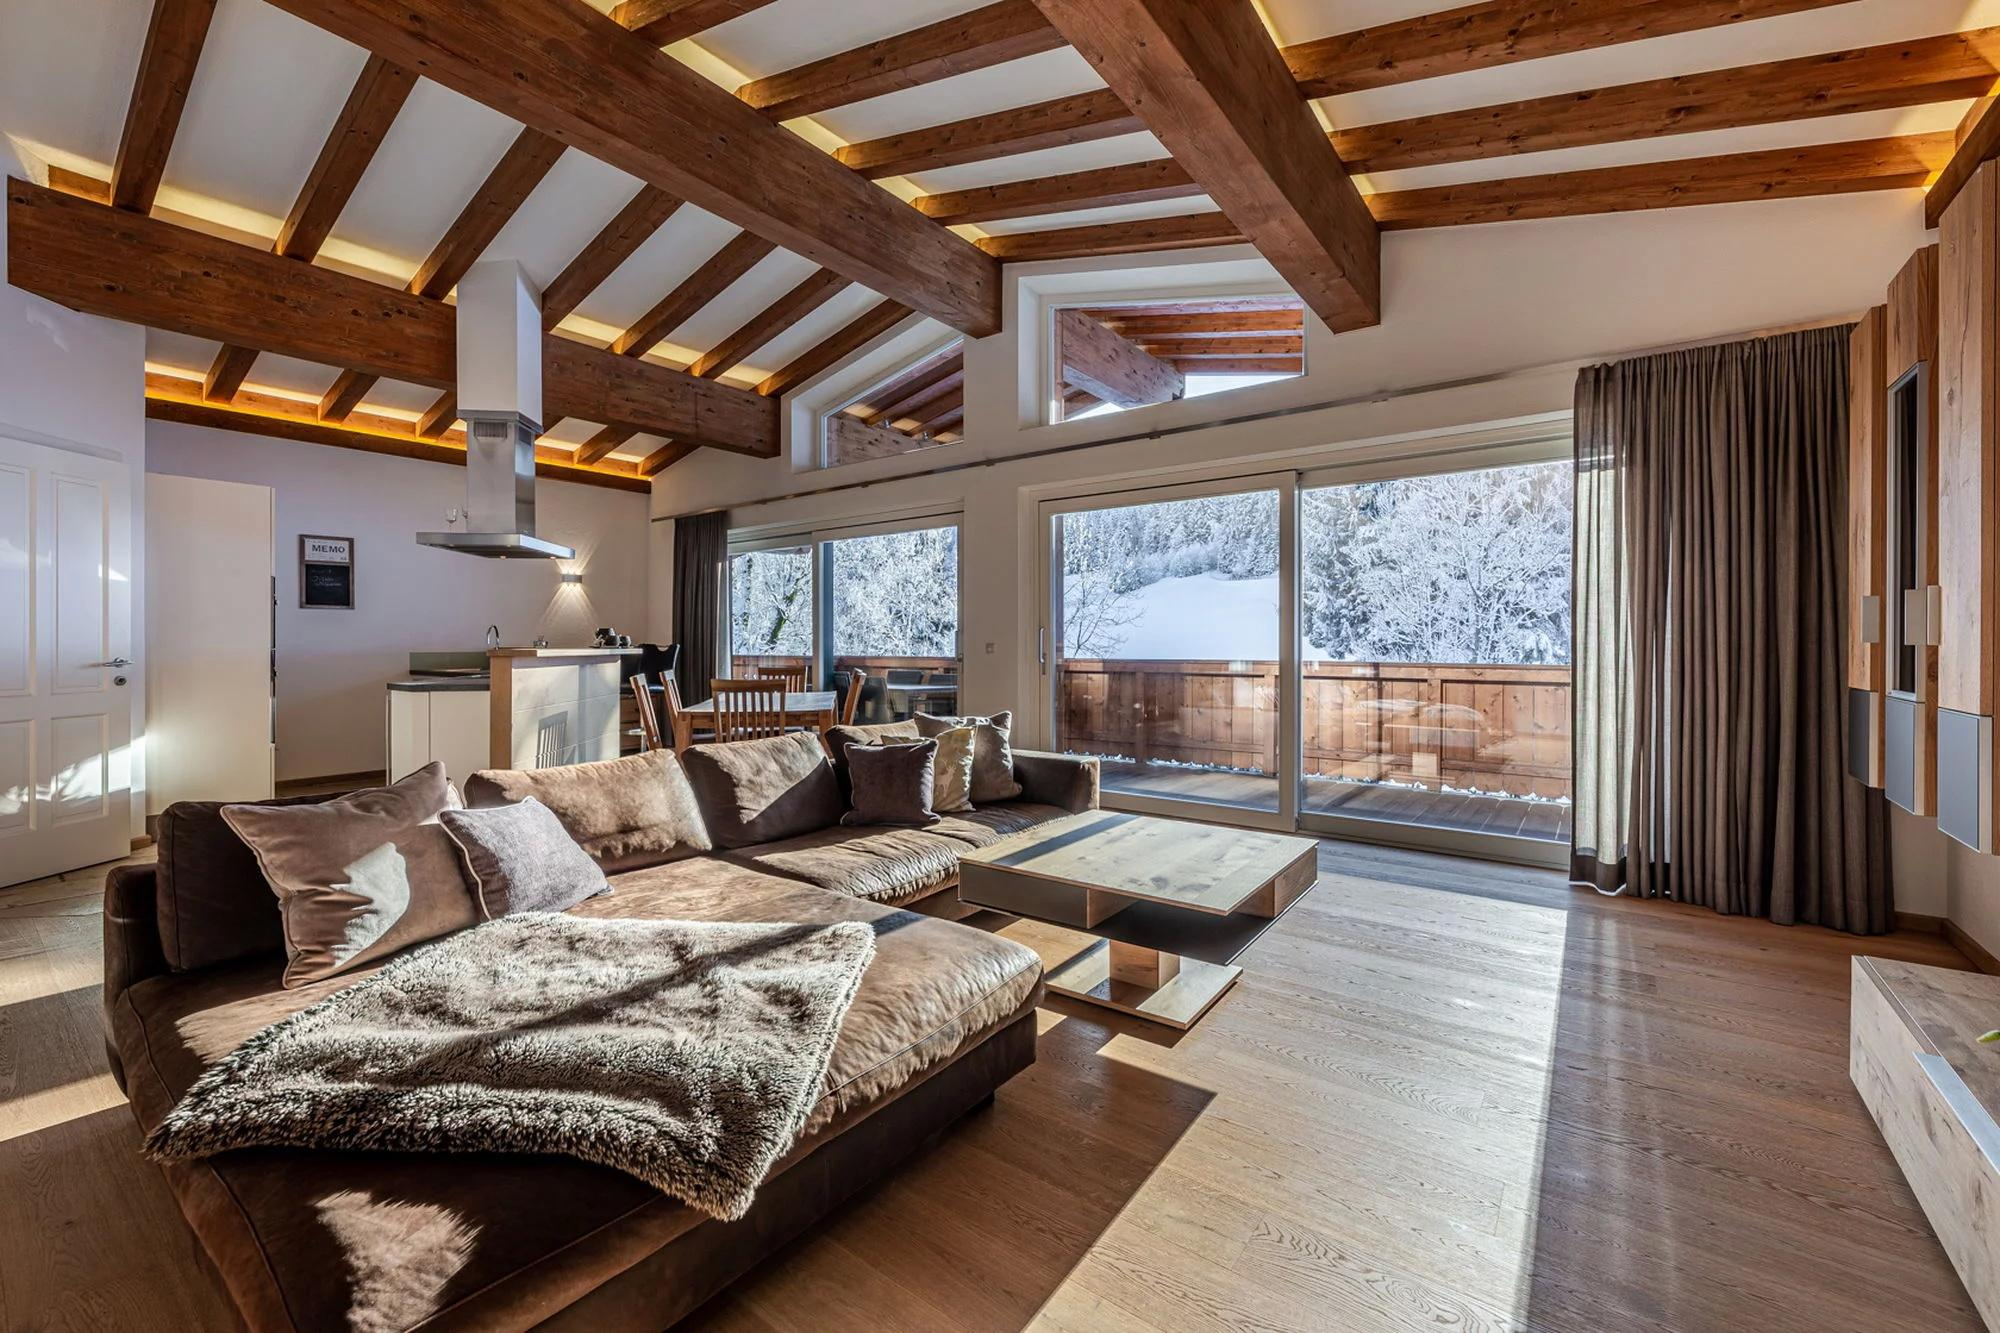 Stylish attic apartment in Kitzbühel for ski lovers For Sale - Austria - Tirol